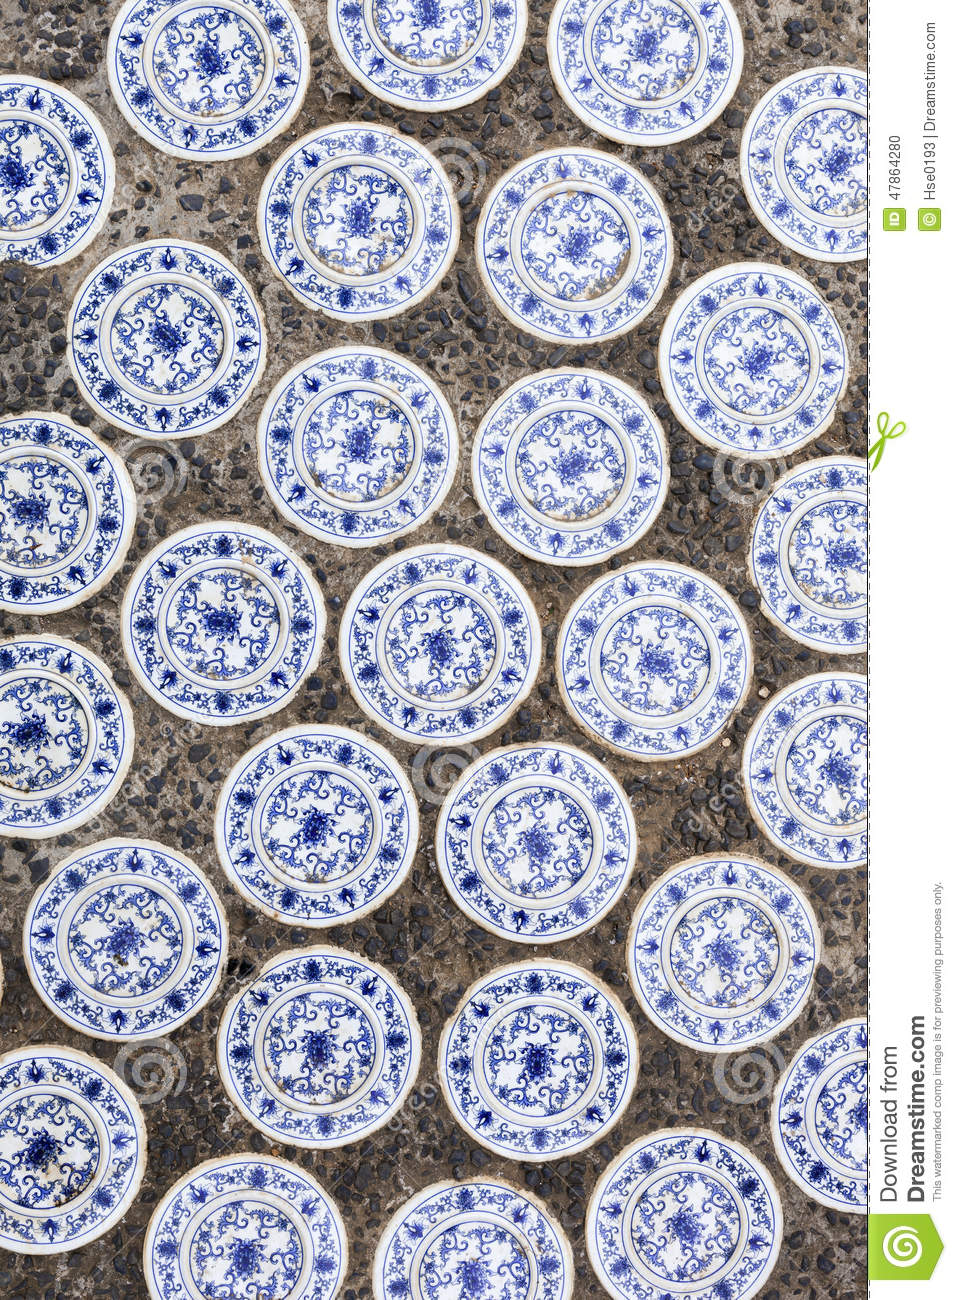 Chinese ceramic tiles stock photo image of orient characteristic royalty free stock photo download chinese ceramic tiles dailygadgetfo Image collections